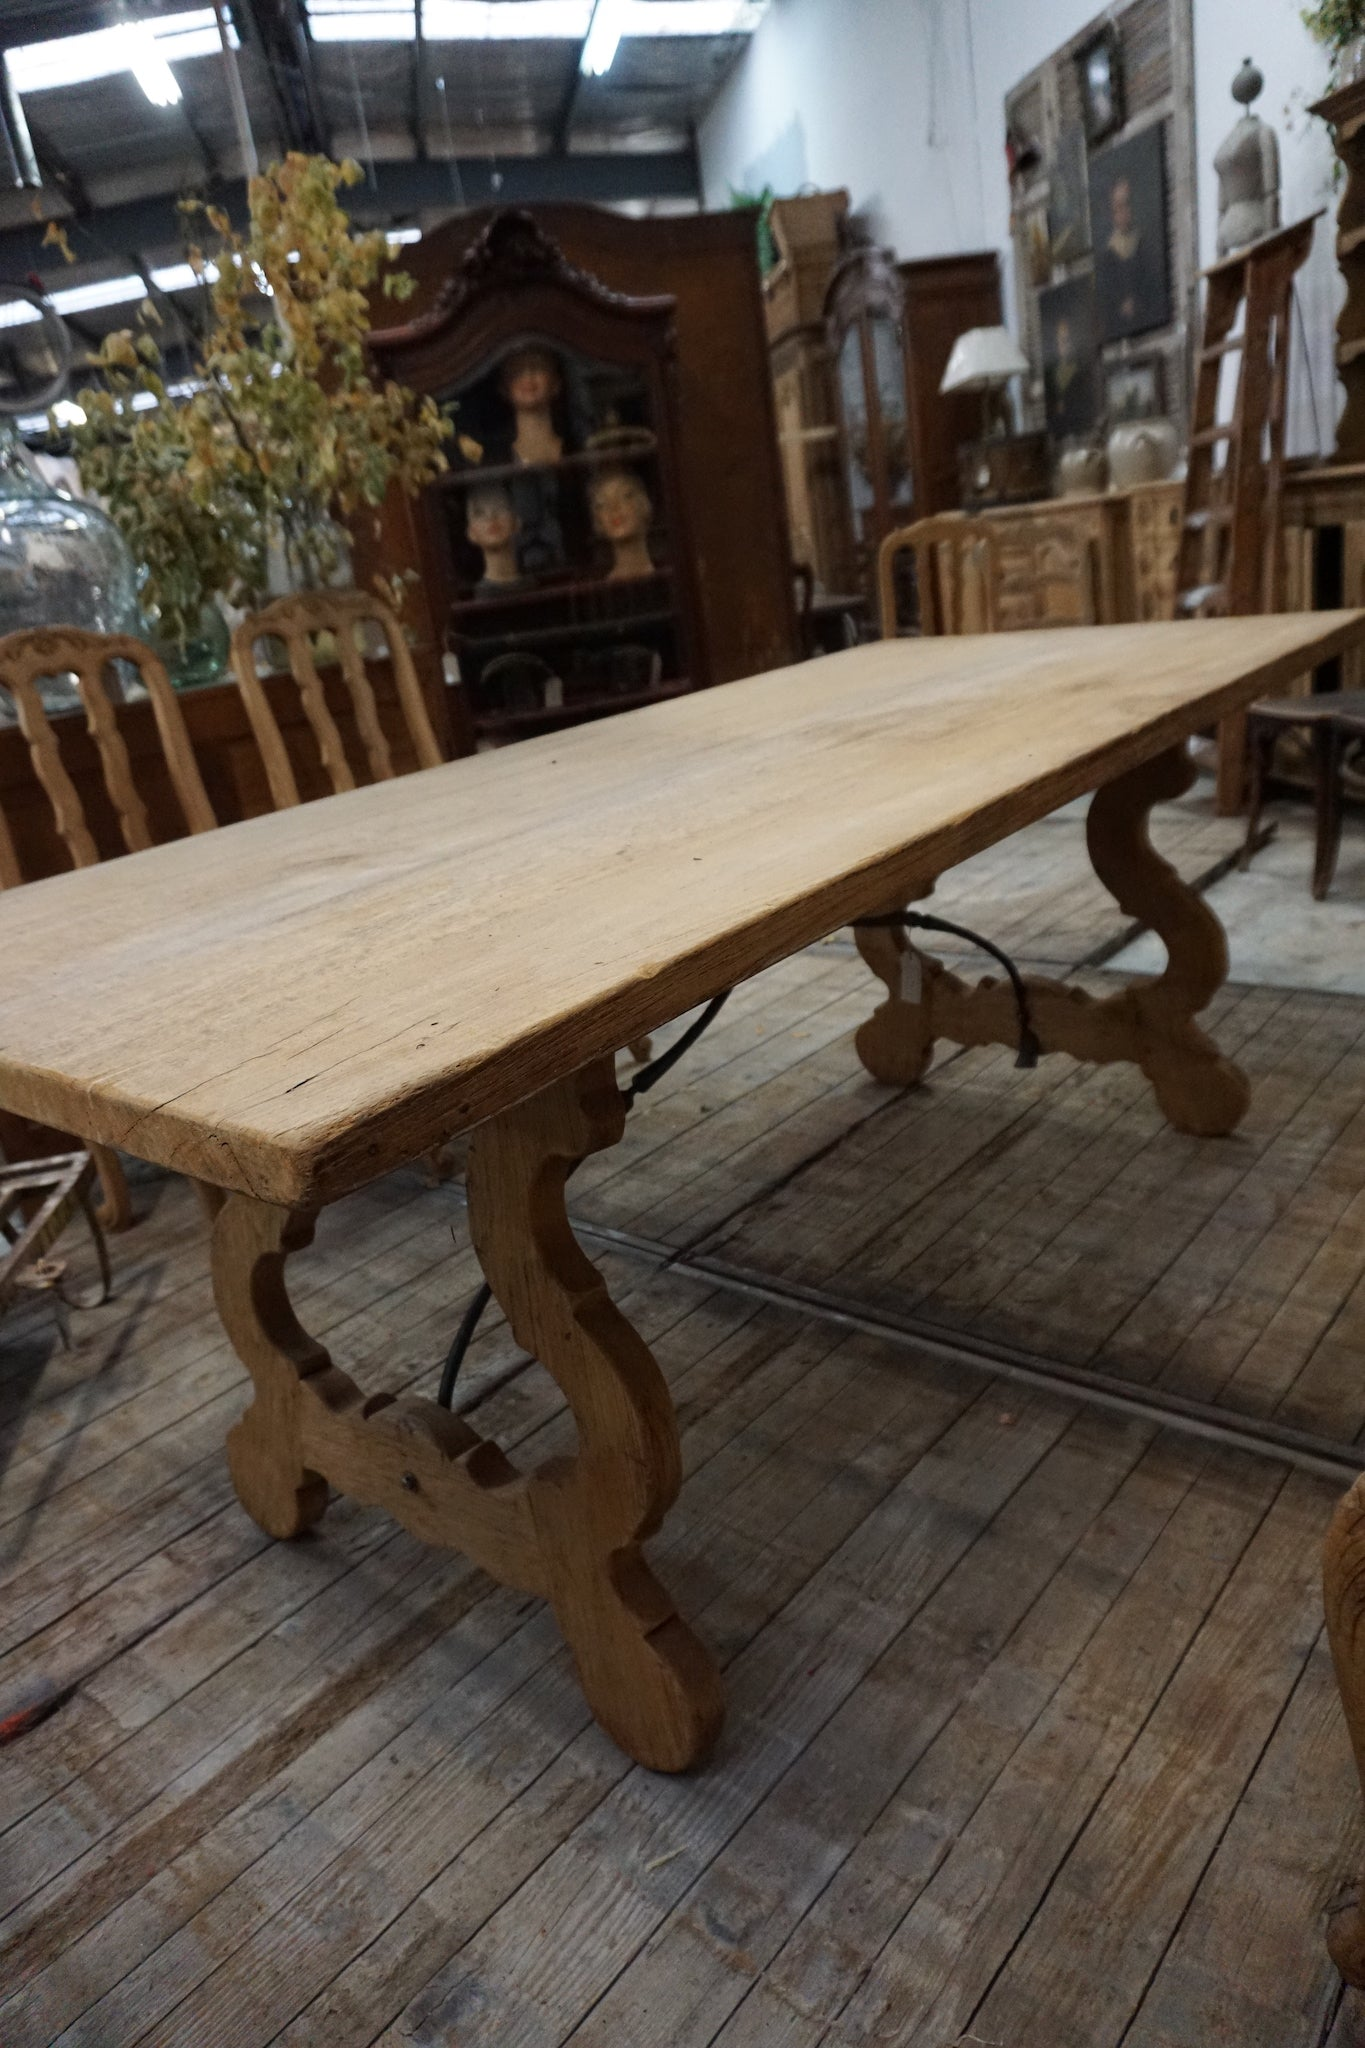 Antique French Dining Table with Wrought Iron Base